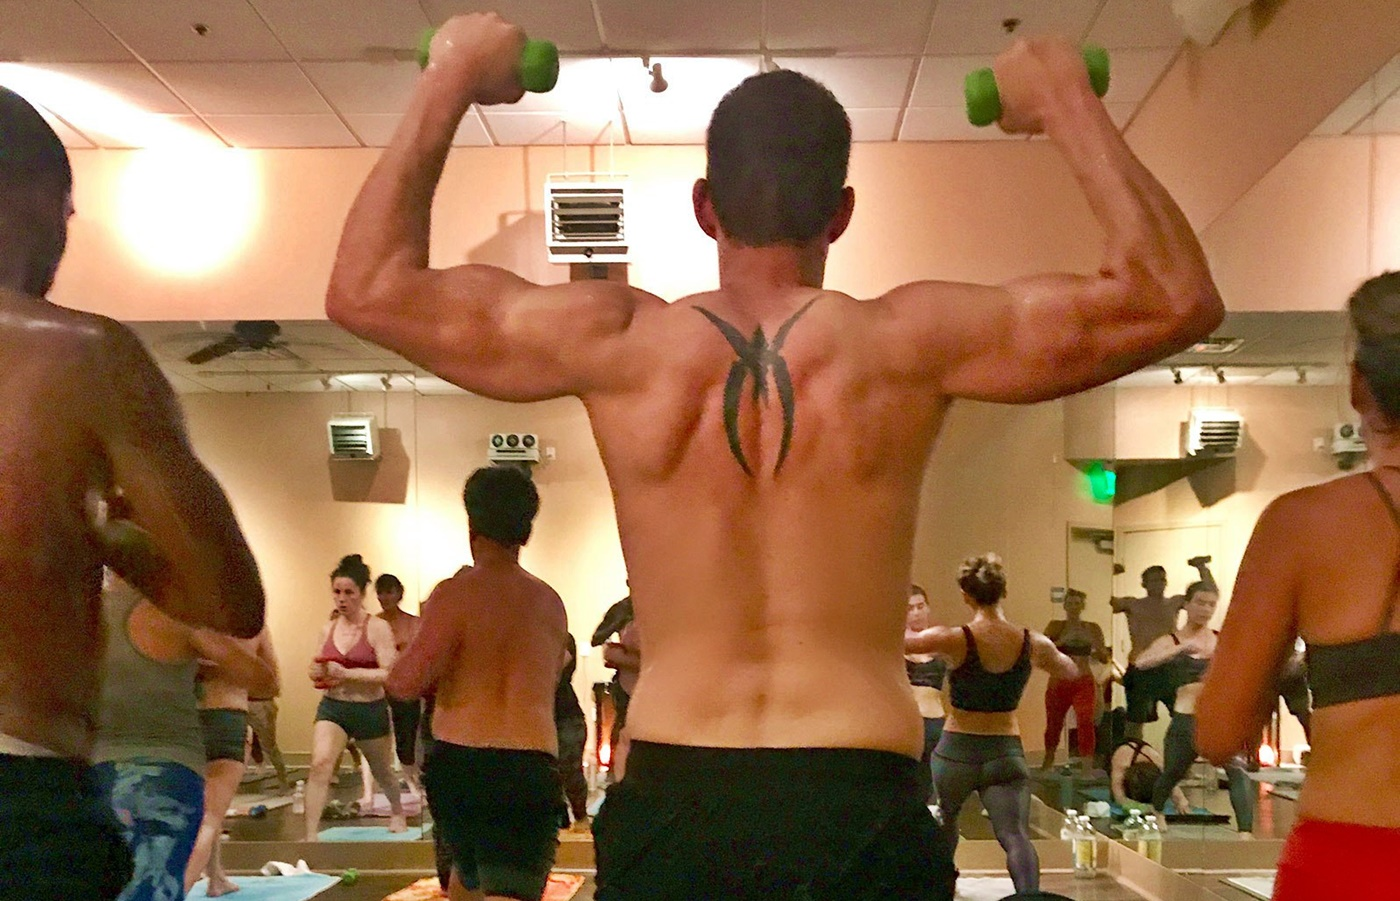 Flip & Flop Star Tarek El Moussa Finds Strength in Hot Yoga